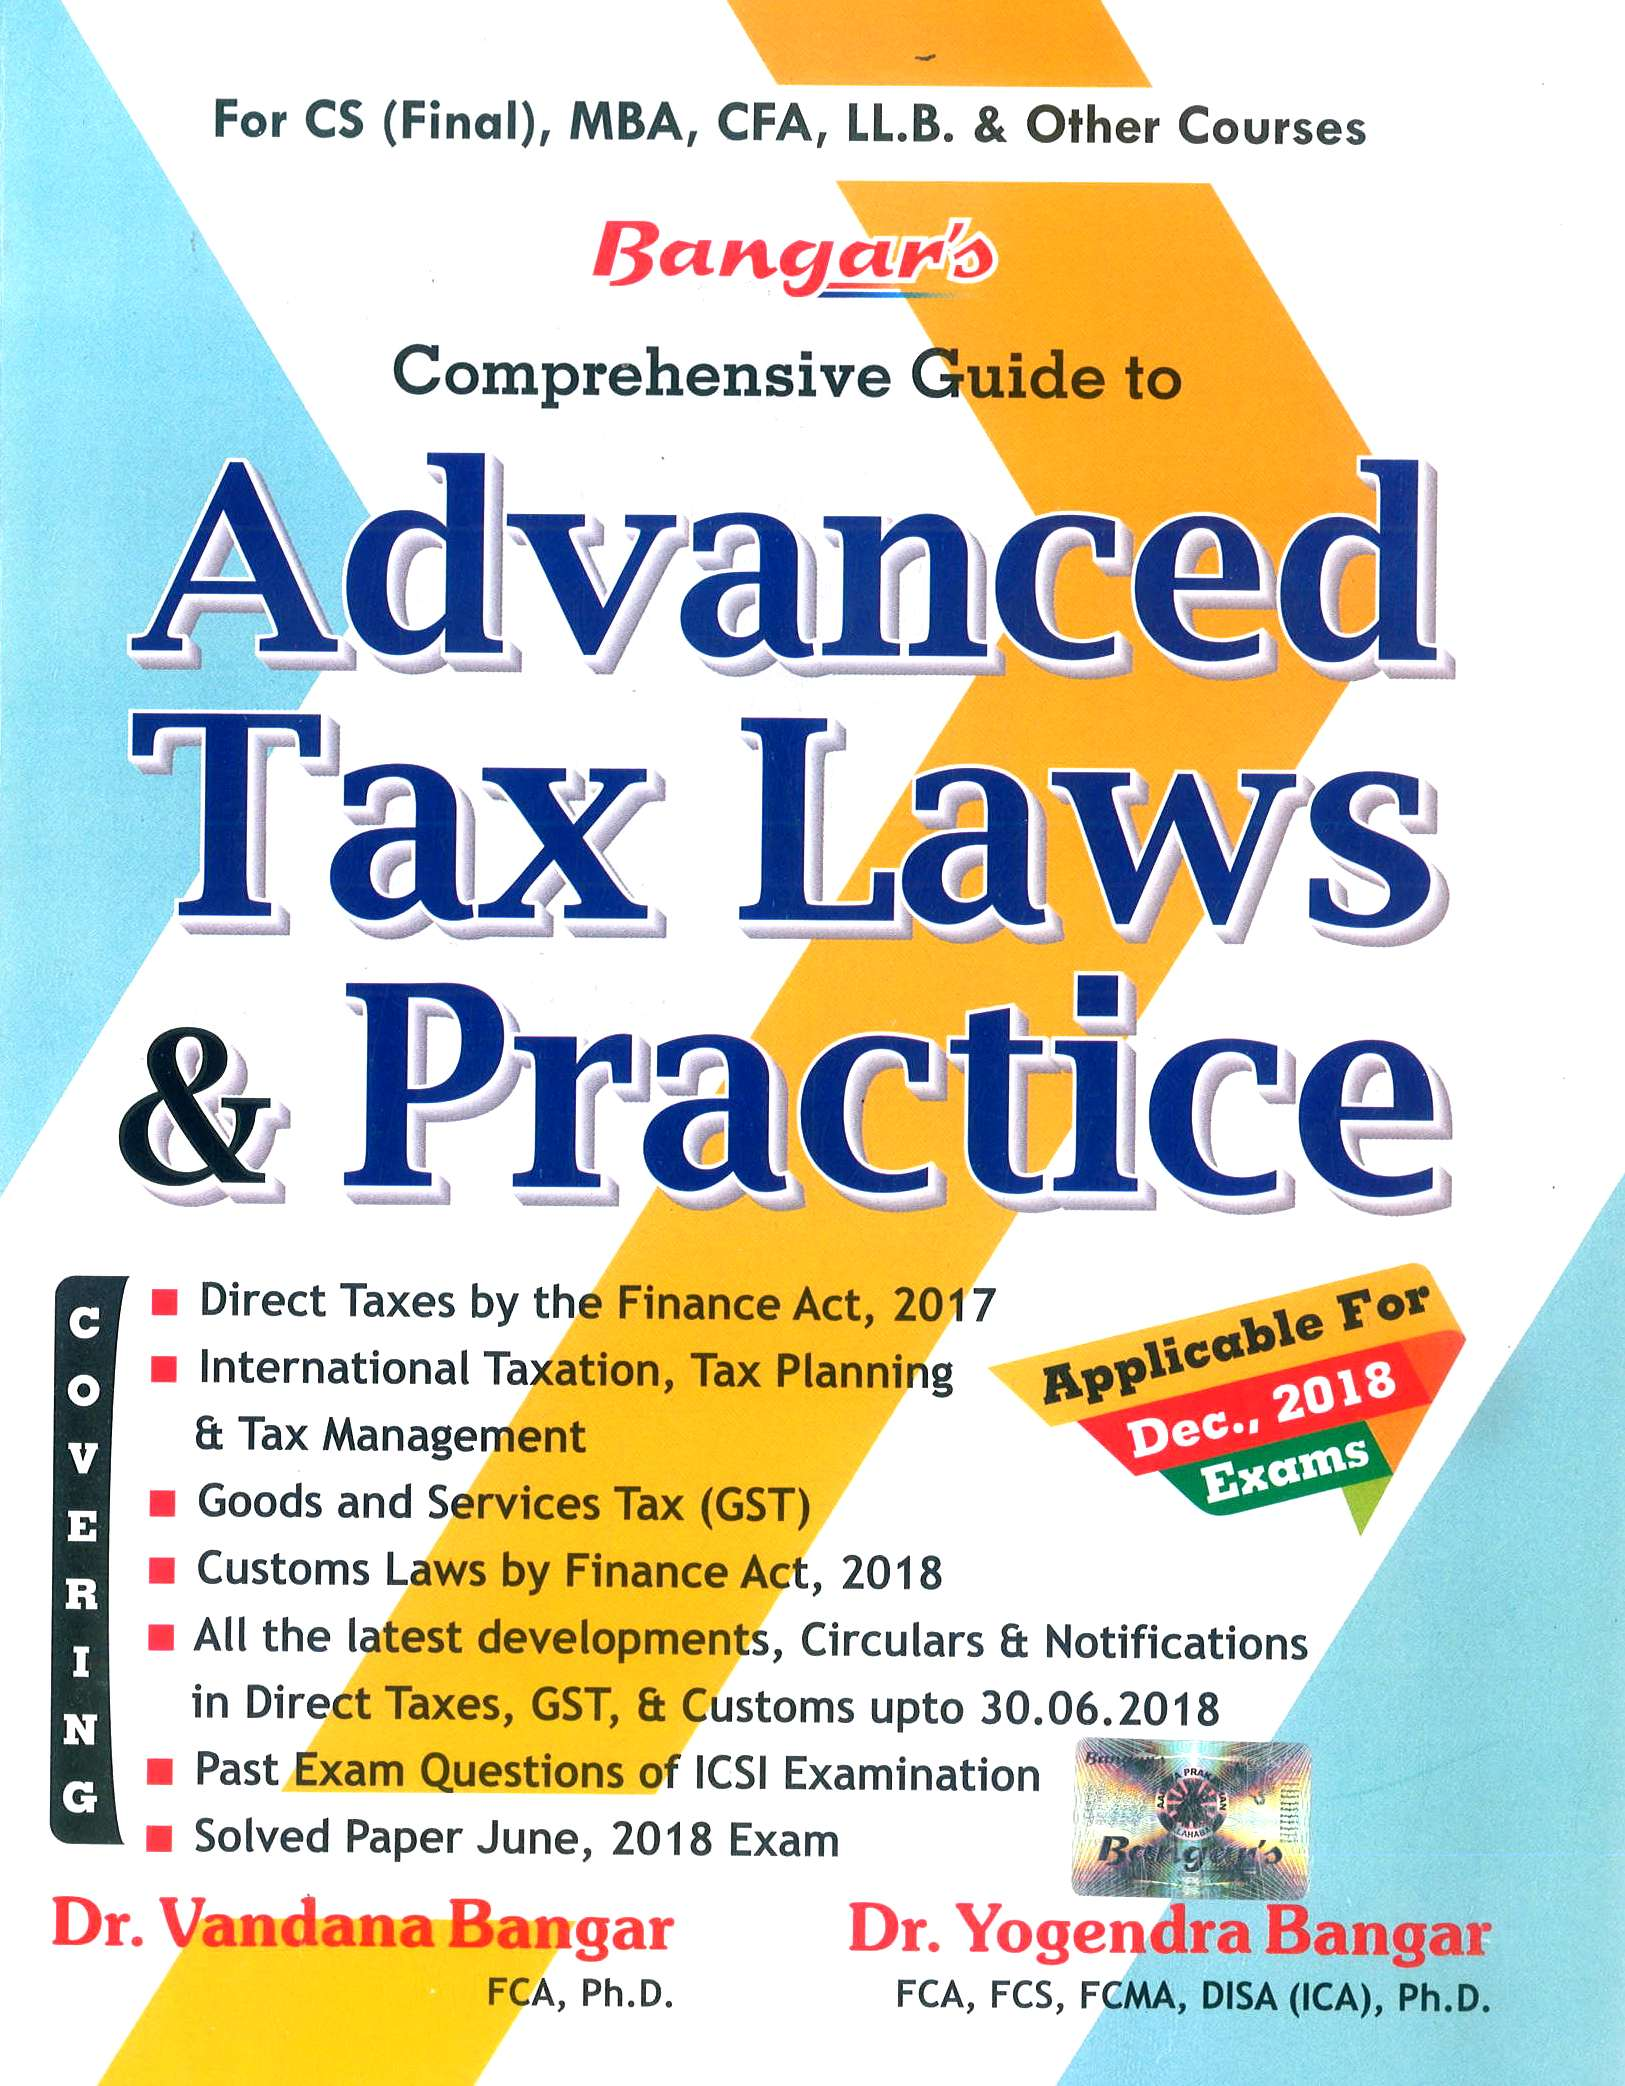 Bangar's Comprehensive Guide to Aadhya Prakashan Advanced Tax Laws and Practice for CS Final by Yogendra Bangar and Vandana Bangar for CS Final, MBA, CFA, LL.B and Other Courses (Aadhya Prakashan) Edition , 2018